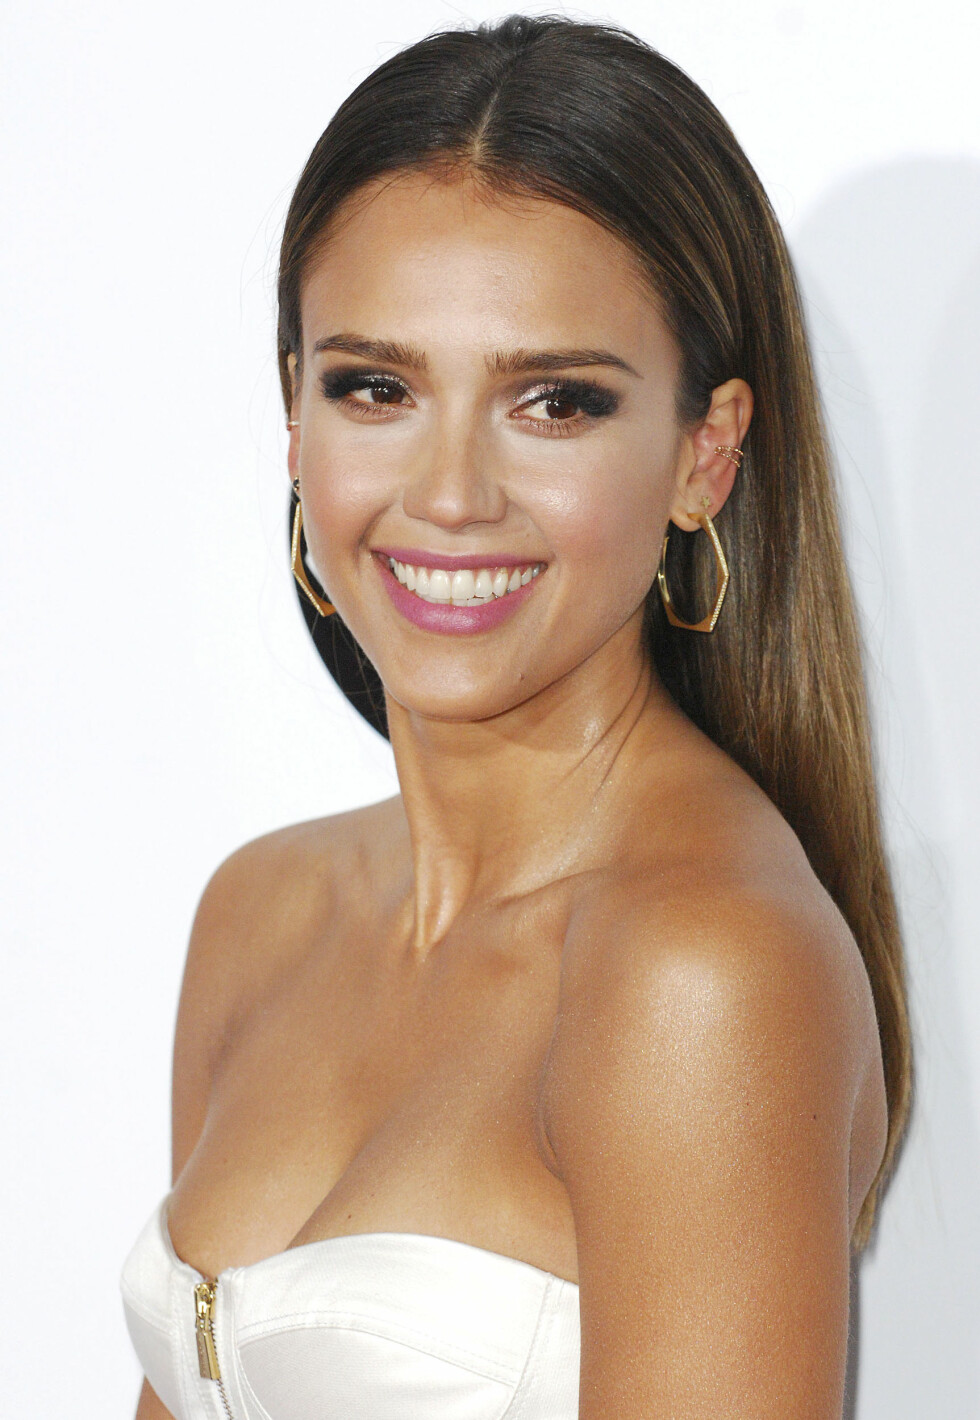 JESSICA ALBA - OVALT ANSIKT.  Foto: All Over Press